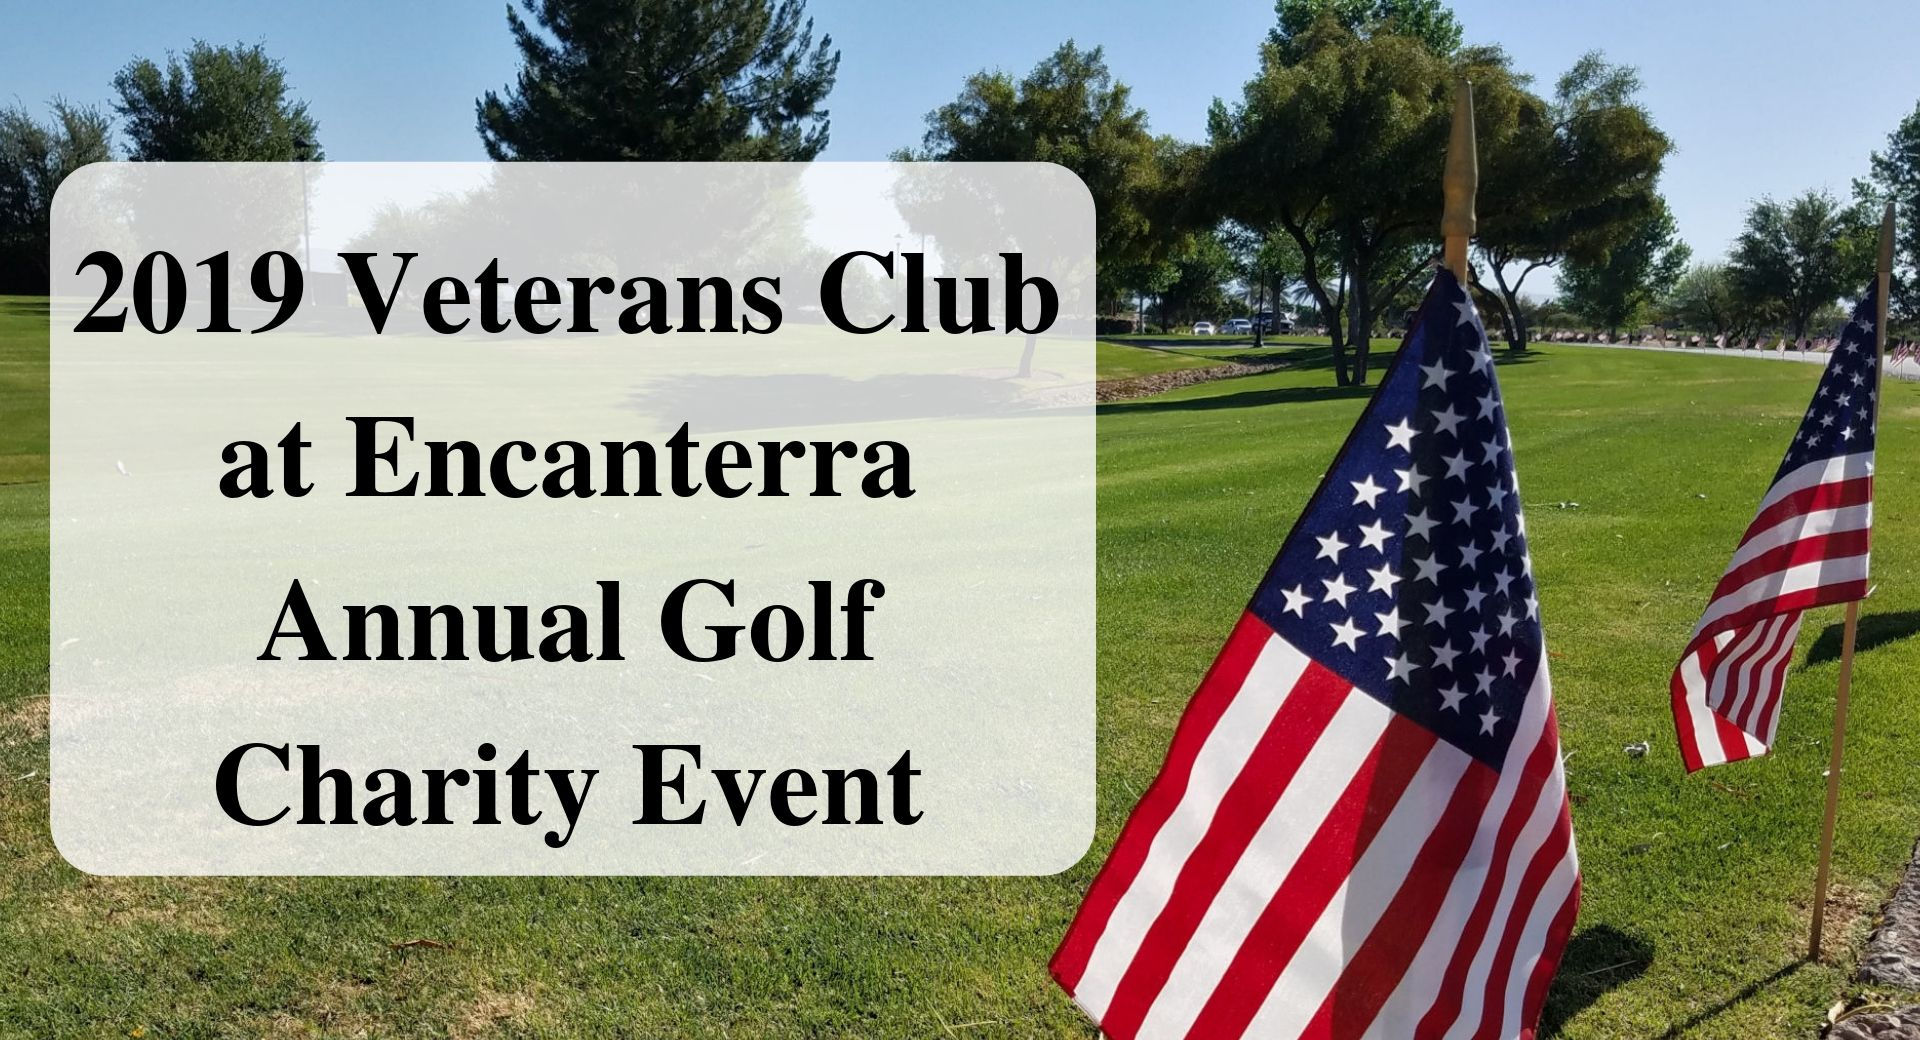 2019 Veterans Club at Encanterra Annual Golf Charity Event Forever Sabbatical